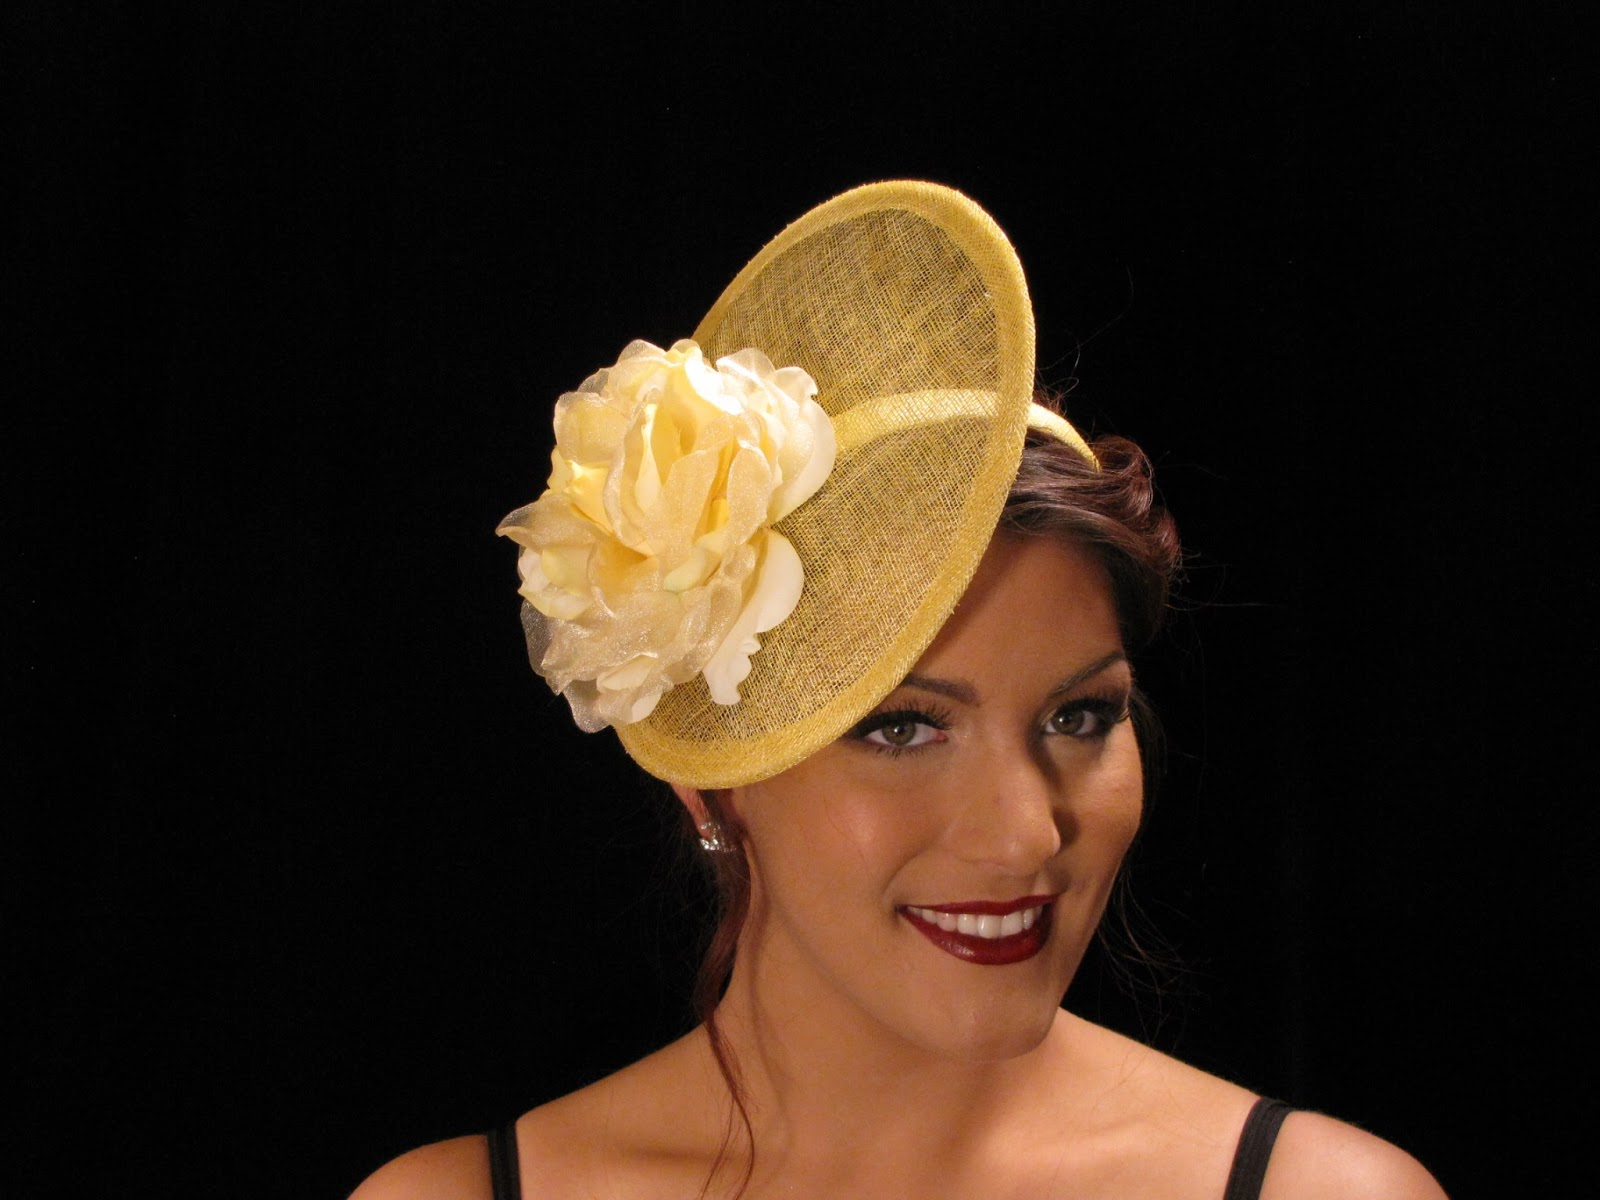 Fascinators Are Worn A Little Diffe From The Hats In Past Today Many Women Have Short Hair So How Is That Disk Staying Perched On Side